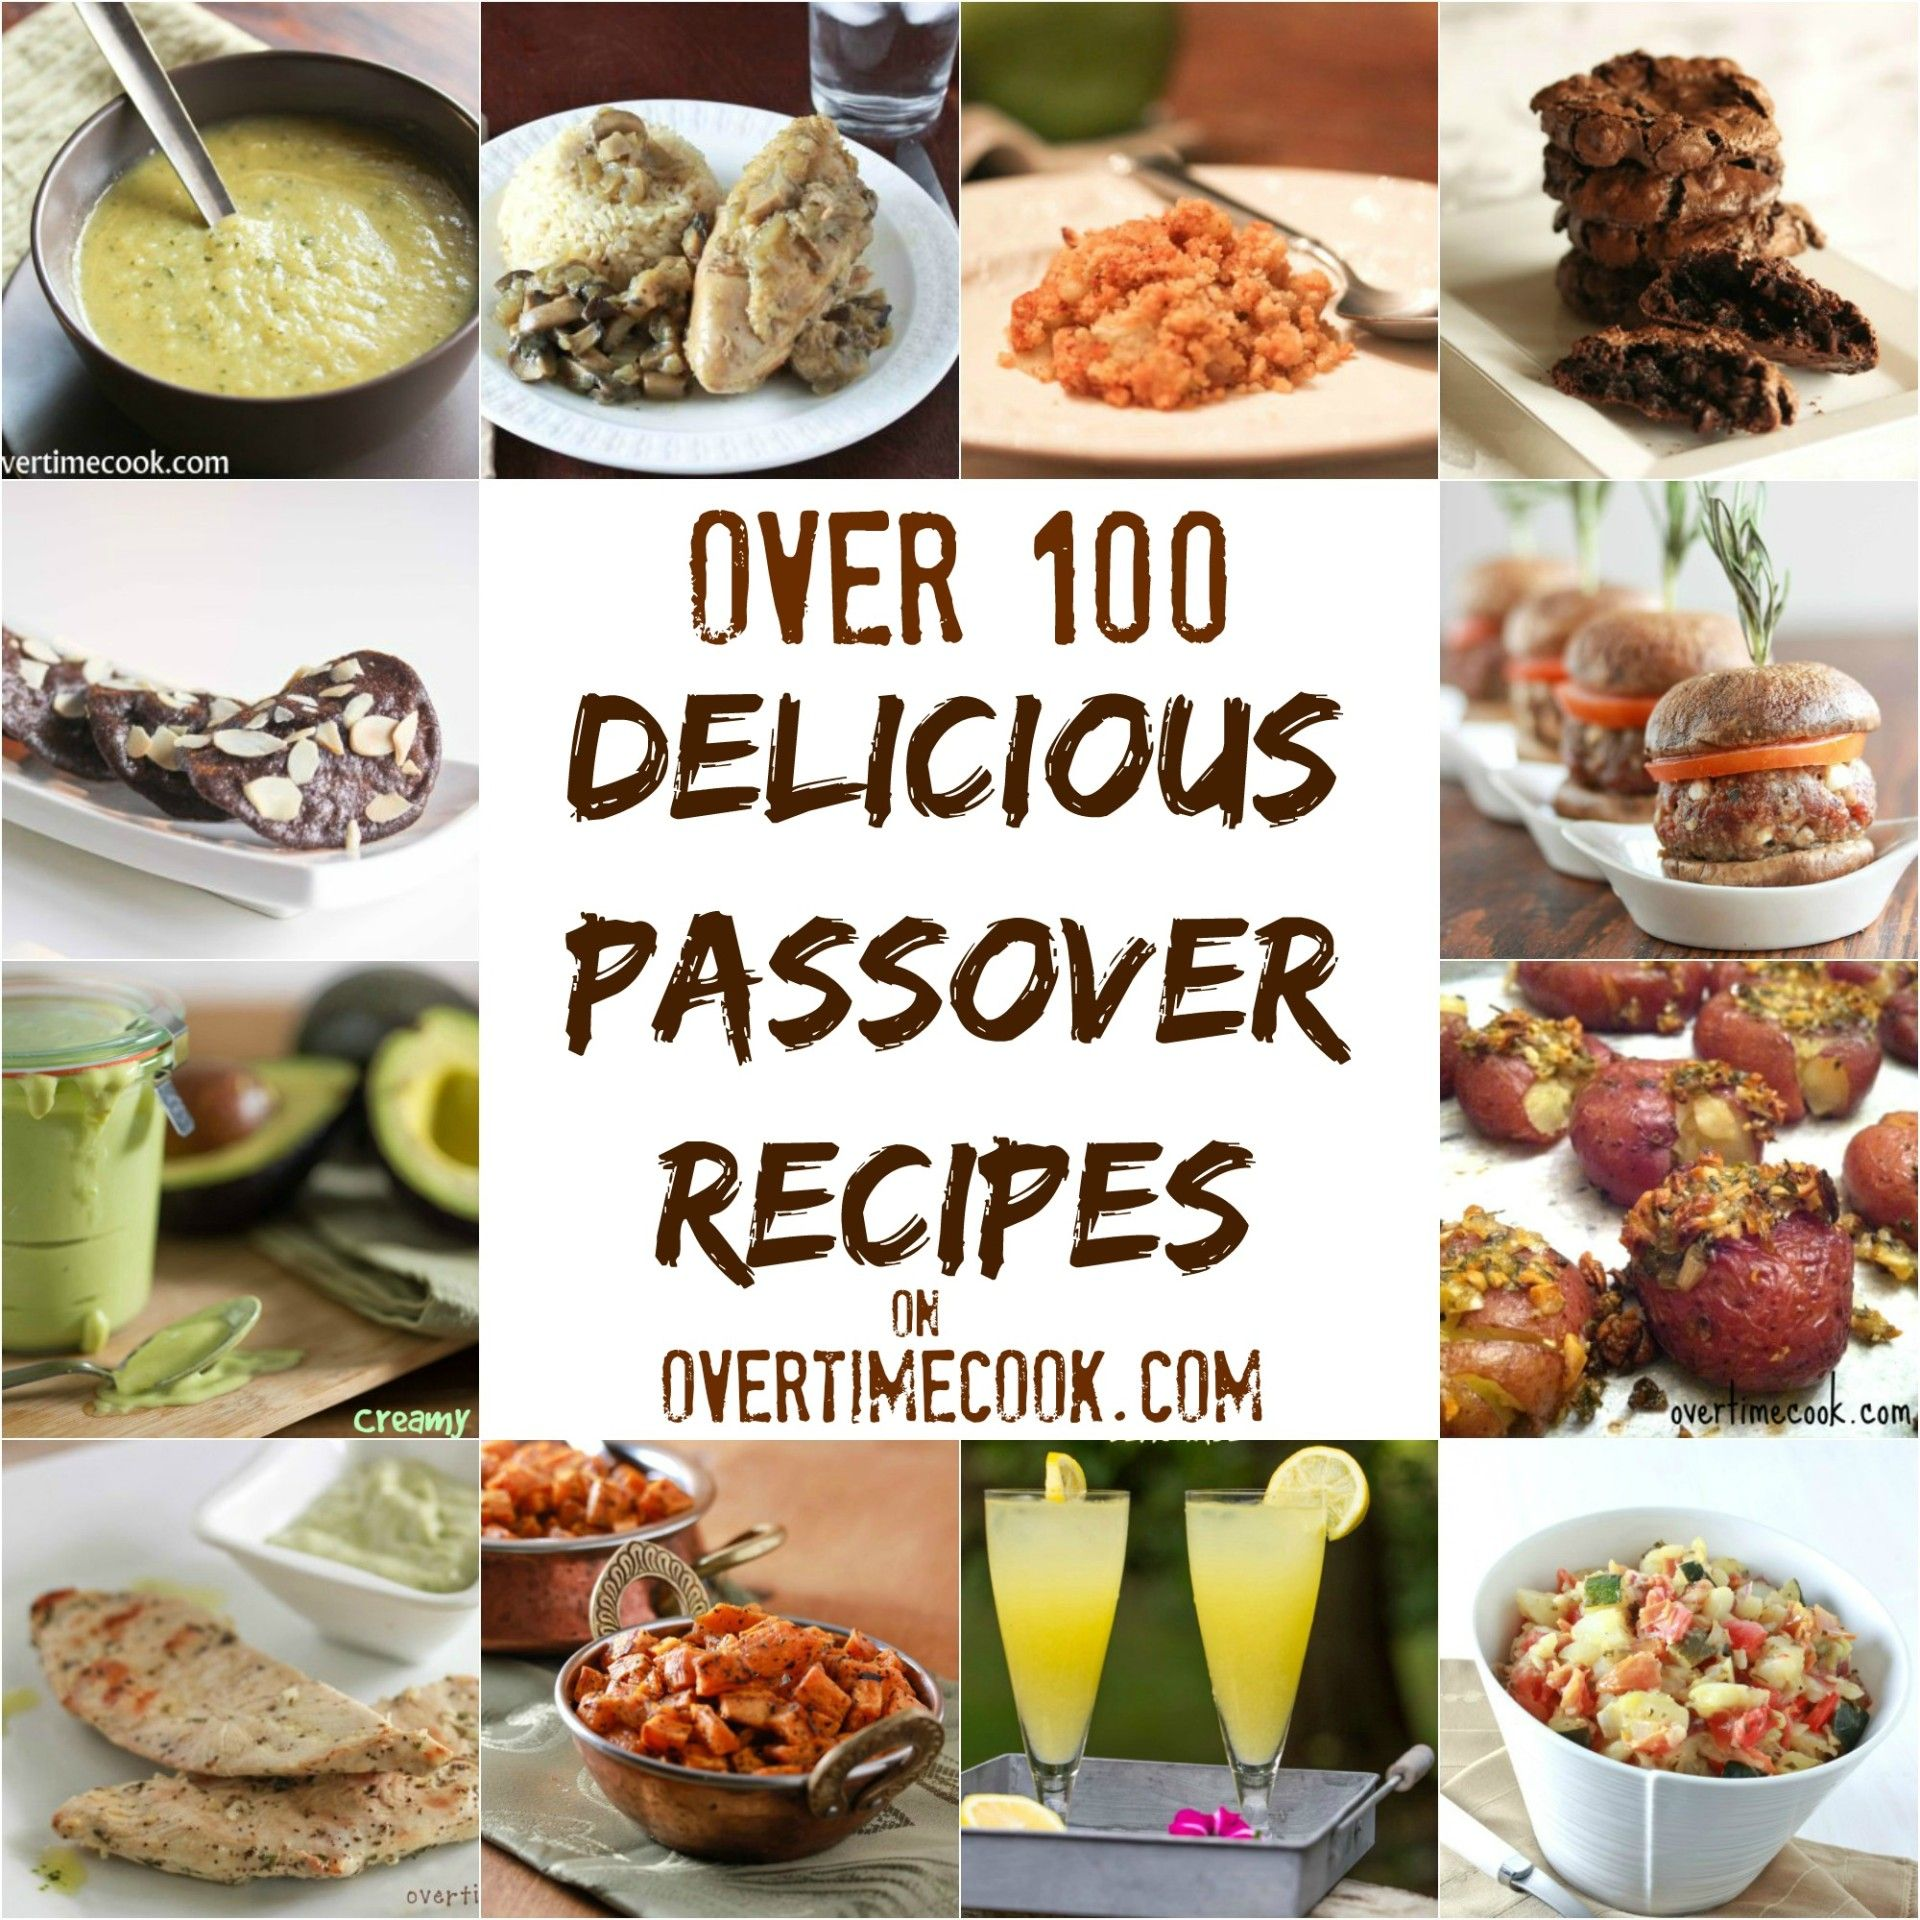 Seder Recipes Looking for Seder recipes? Allrecipes has more than trusted Seder recipes complete with ratings, reviews and cooking tips.